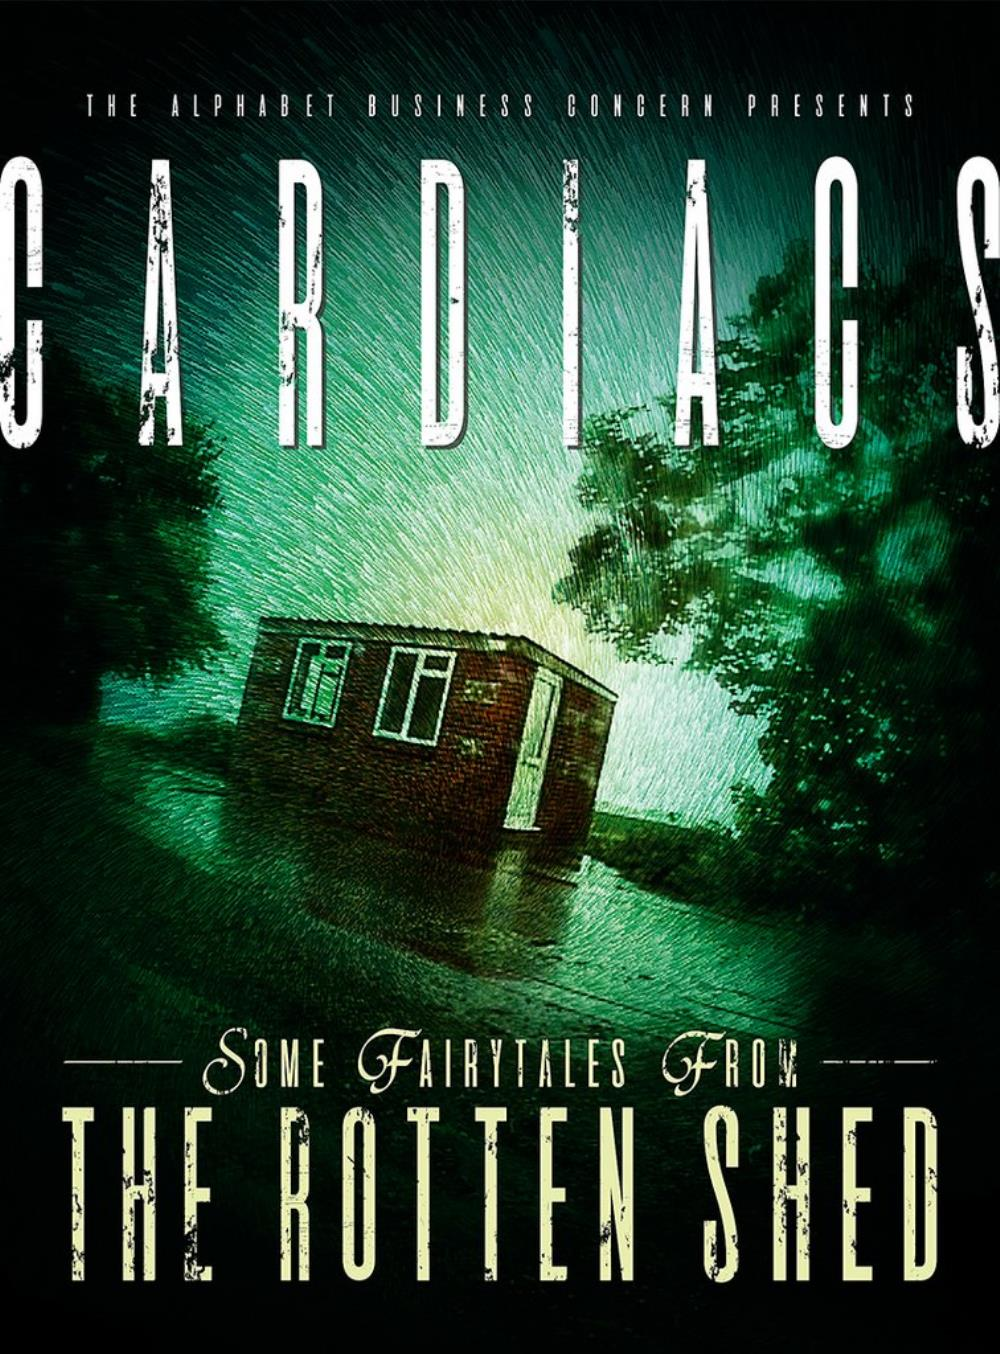 Cardiacs Some Fairytales From The Rotten Shed album cover